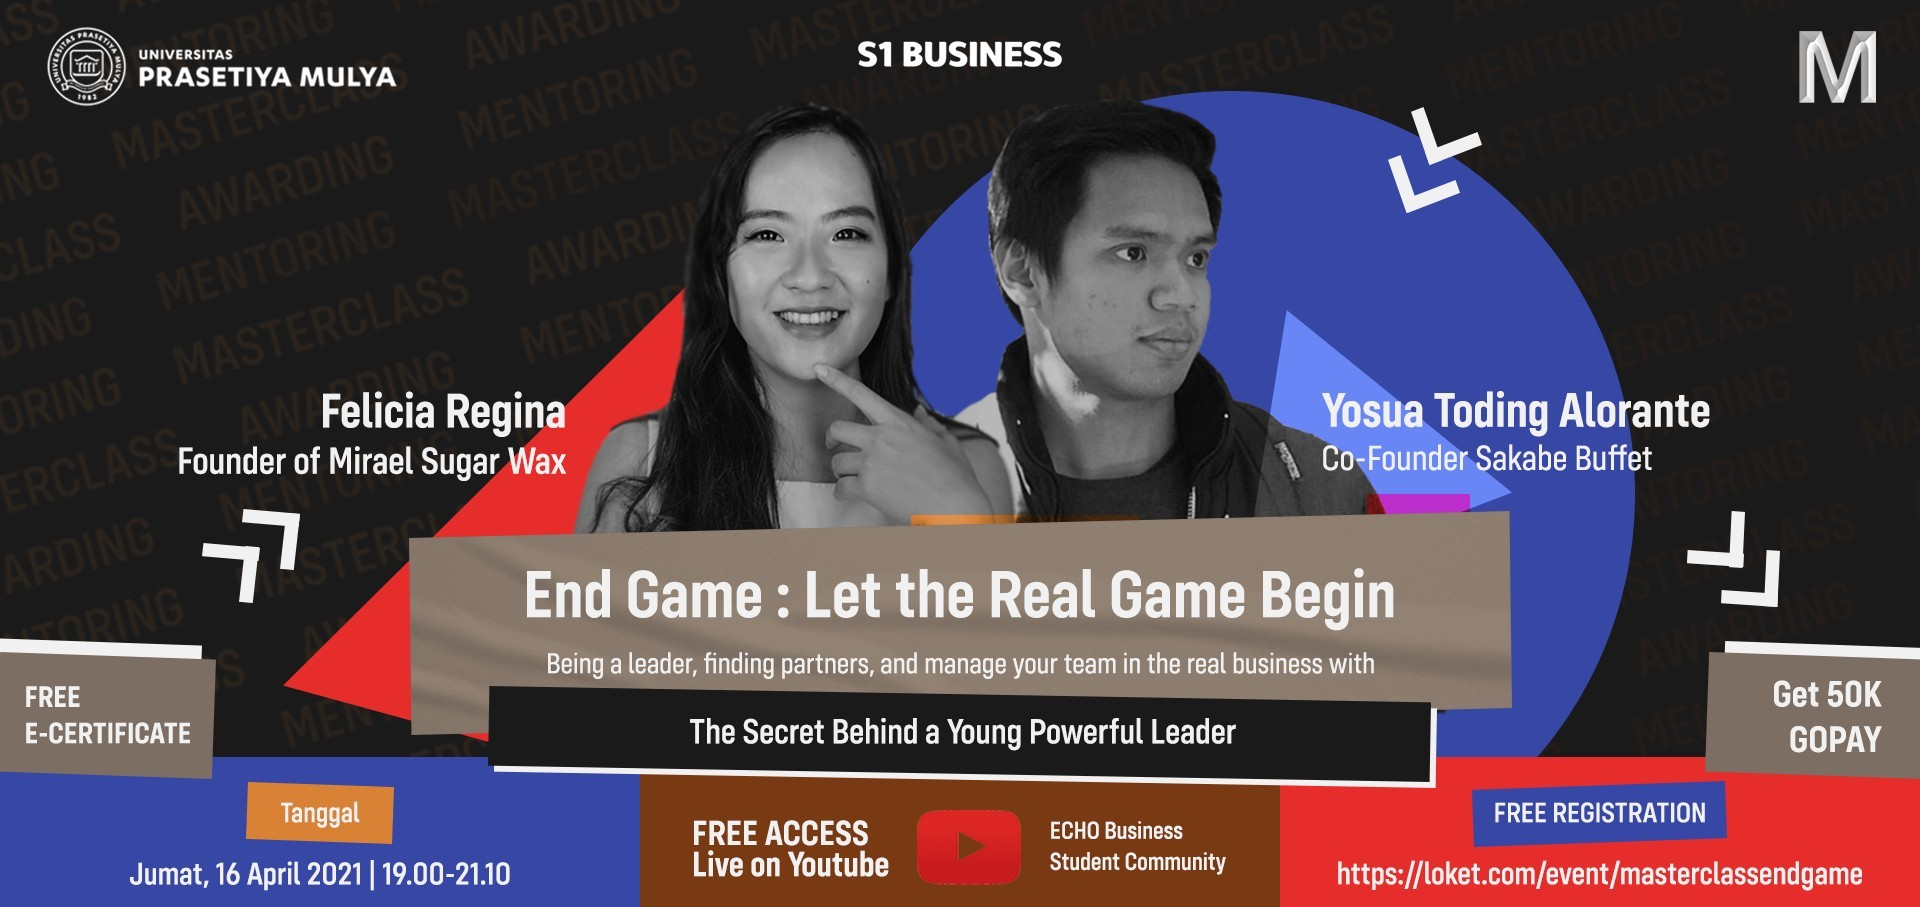 ECHO Masterclass End Game: The Secret Behind a Young Powerful Leader